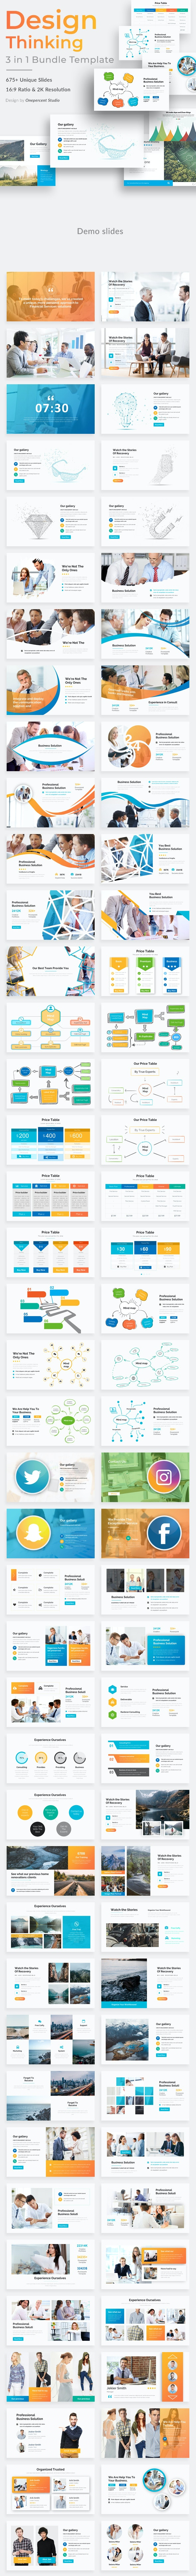 Design Thinking 3 in 1 Pitch Deck Bundle Keynote Template - Creative Keynote Templates